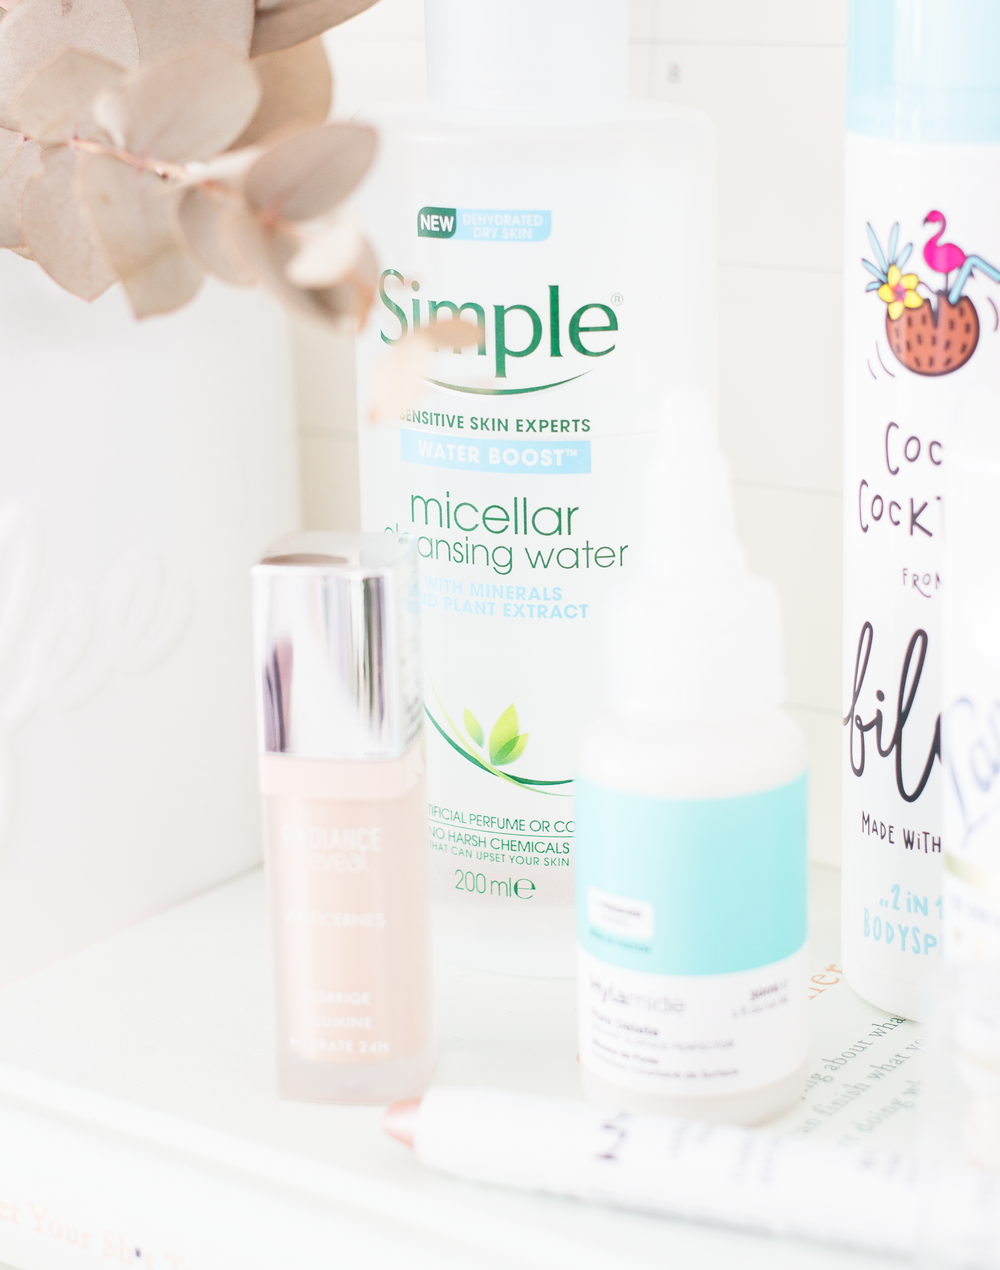 UNDER £10  - SIMPLE HYDRATOR BOOST MICELLAR CLEANSING WATER*: I've been loyal to the Garnier Micellar Water for years. And it takes a lot for me to stray away from it but this new release from Simple has got my heart right now. I thought the Garnier was just like water but this is incredible, you can really feel the hydration hit your skin as well as it removing any scrap of makeup you have on without causing any irritation to the complexion. It's more expensive than the Garnier and you definitely don't get as much. But as of right now I really do think this is better and having that extra hydration in the cooler months is ideal. BILOU COCO COCKTAIL BODY SPRAY*: I can't deny that using a body spray does make me feel like a teenager but this number of Bilou is wonderful. It's a sweet rich coconut scent that lingers of the skin and your clothes for a considerable amount of time. Whenever I just want a top of up scent then I will reach for this rather than a perfume and it's ideal as a money saver without missing out on a dreamy scent.